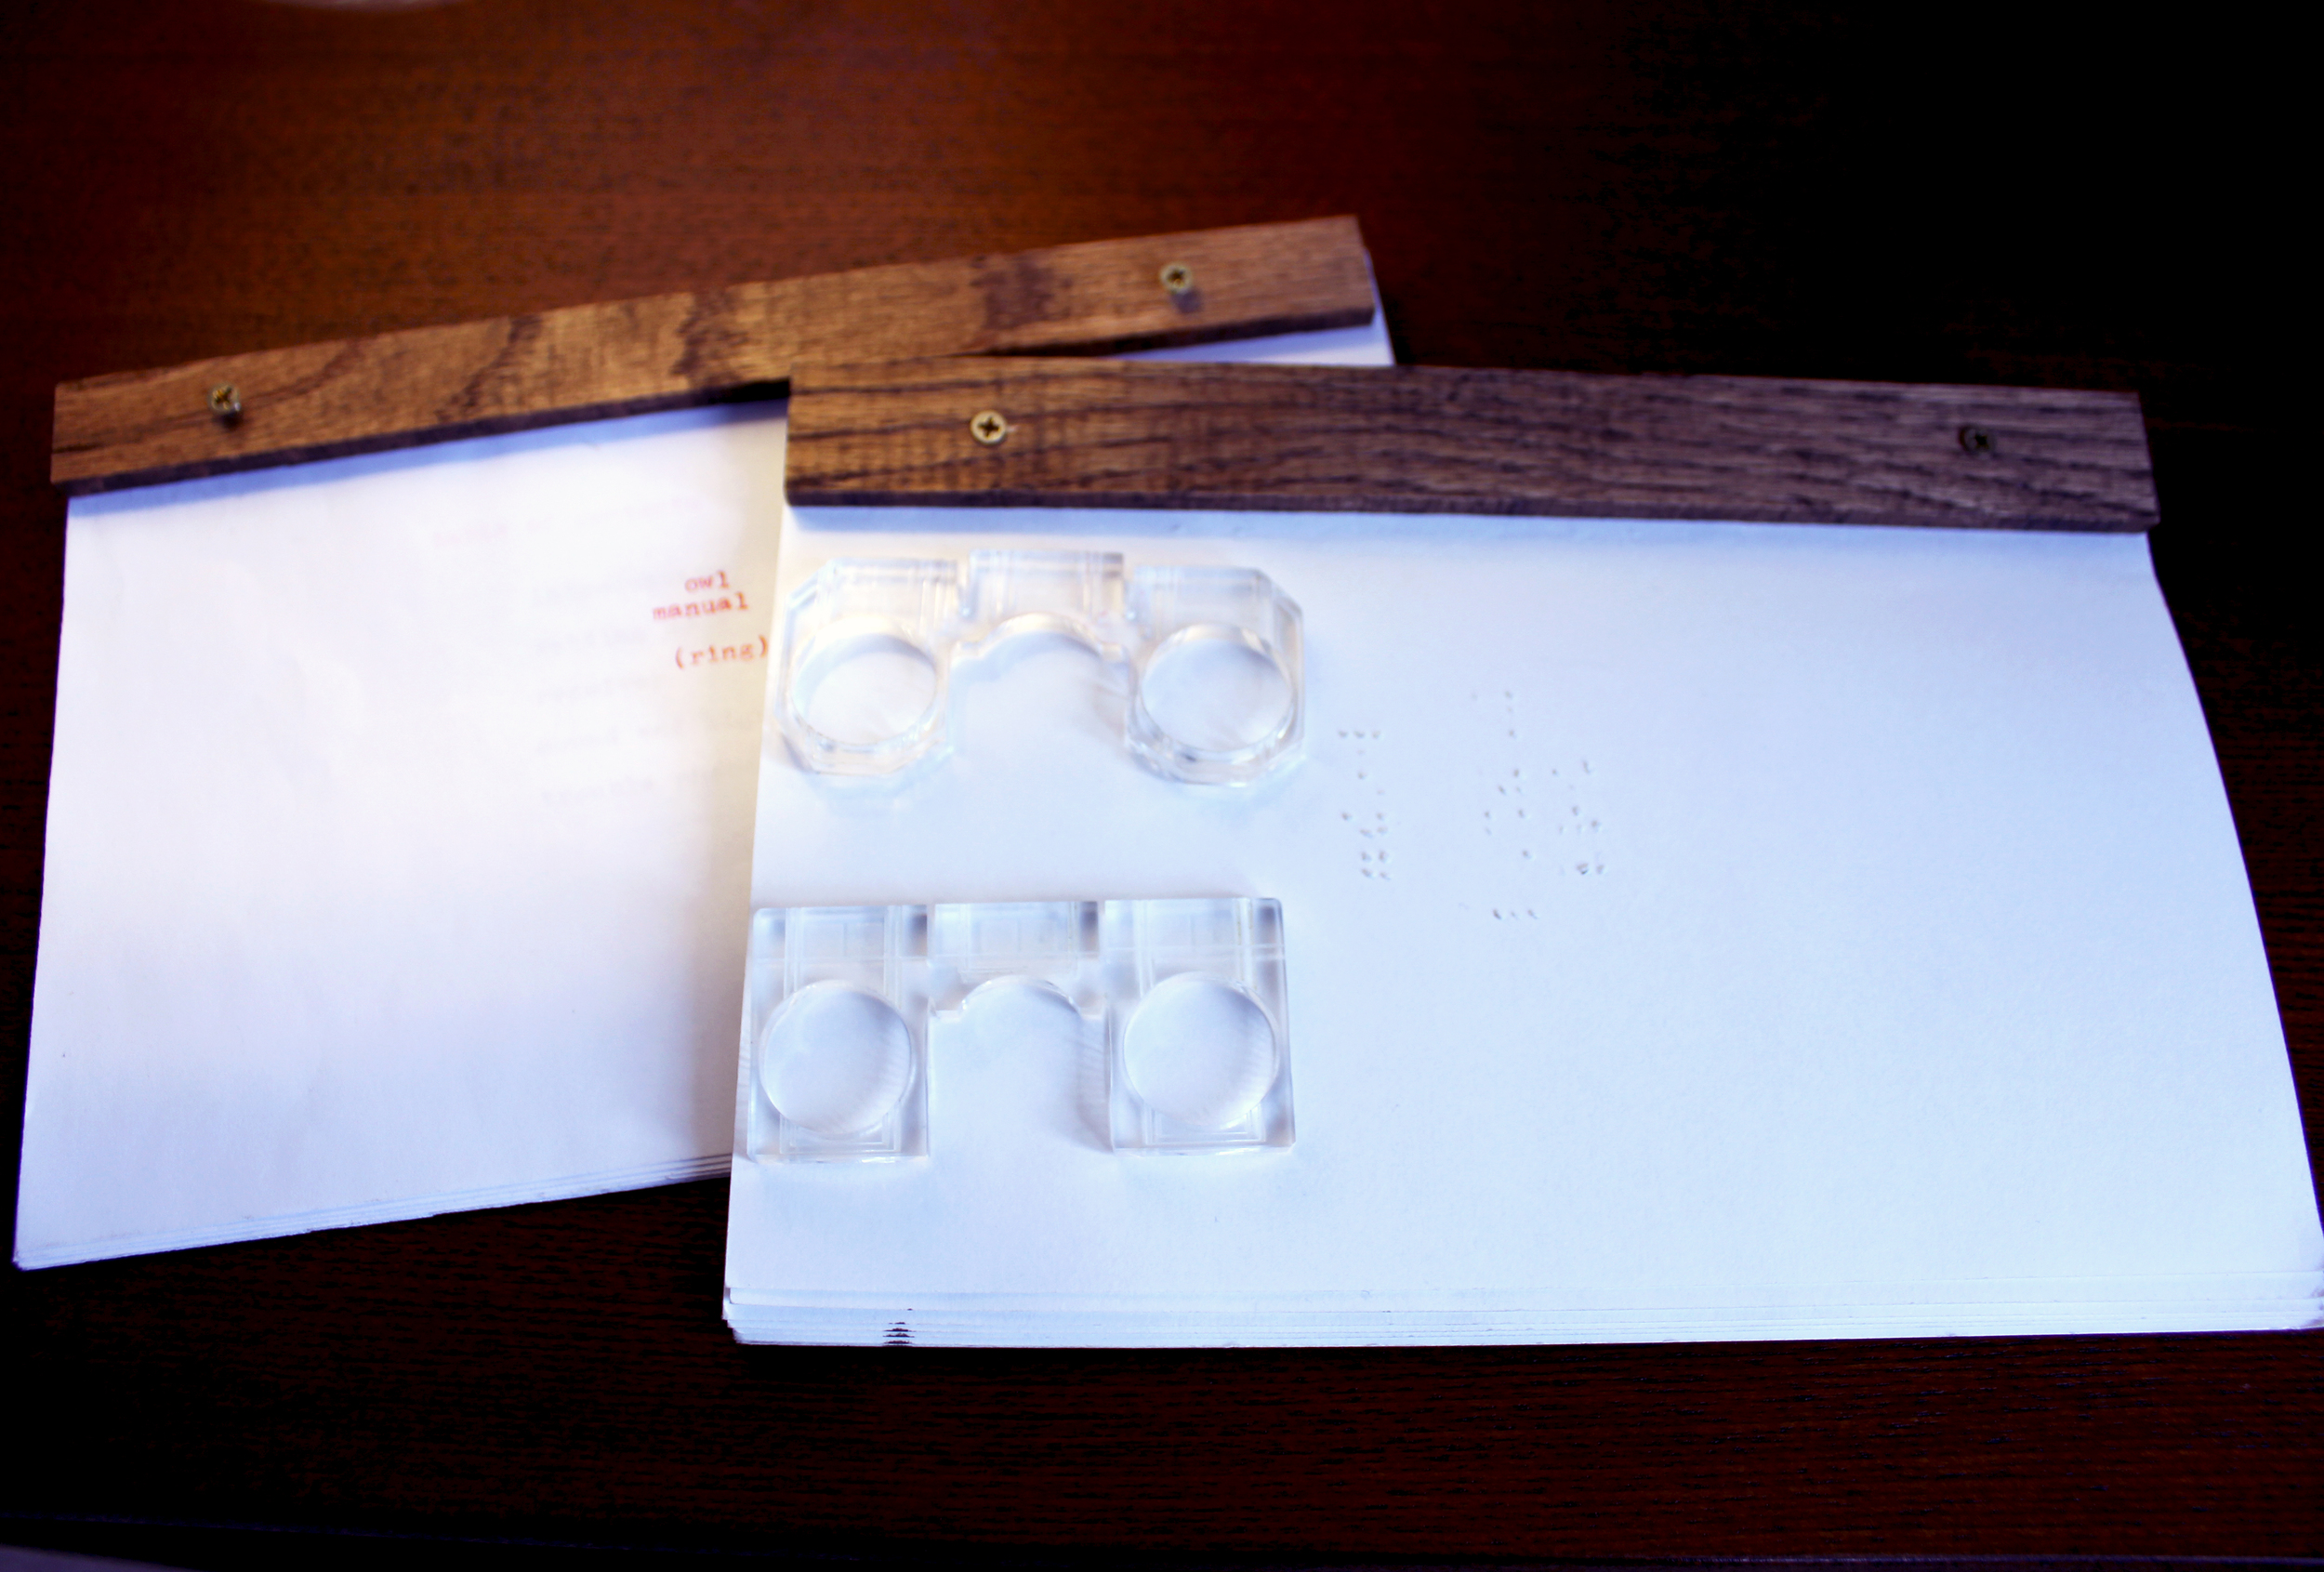 Braille & English Manuals and Ring Prototypes